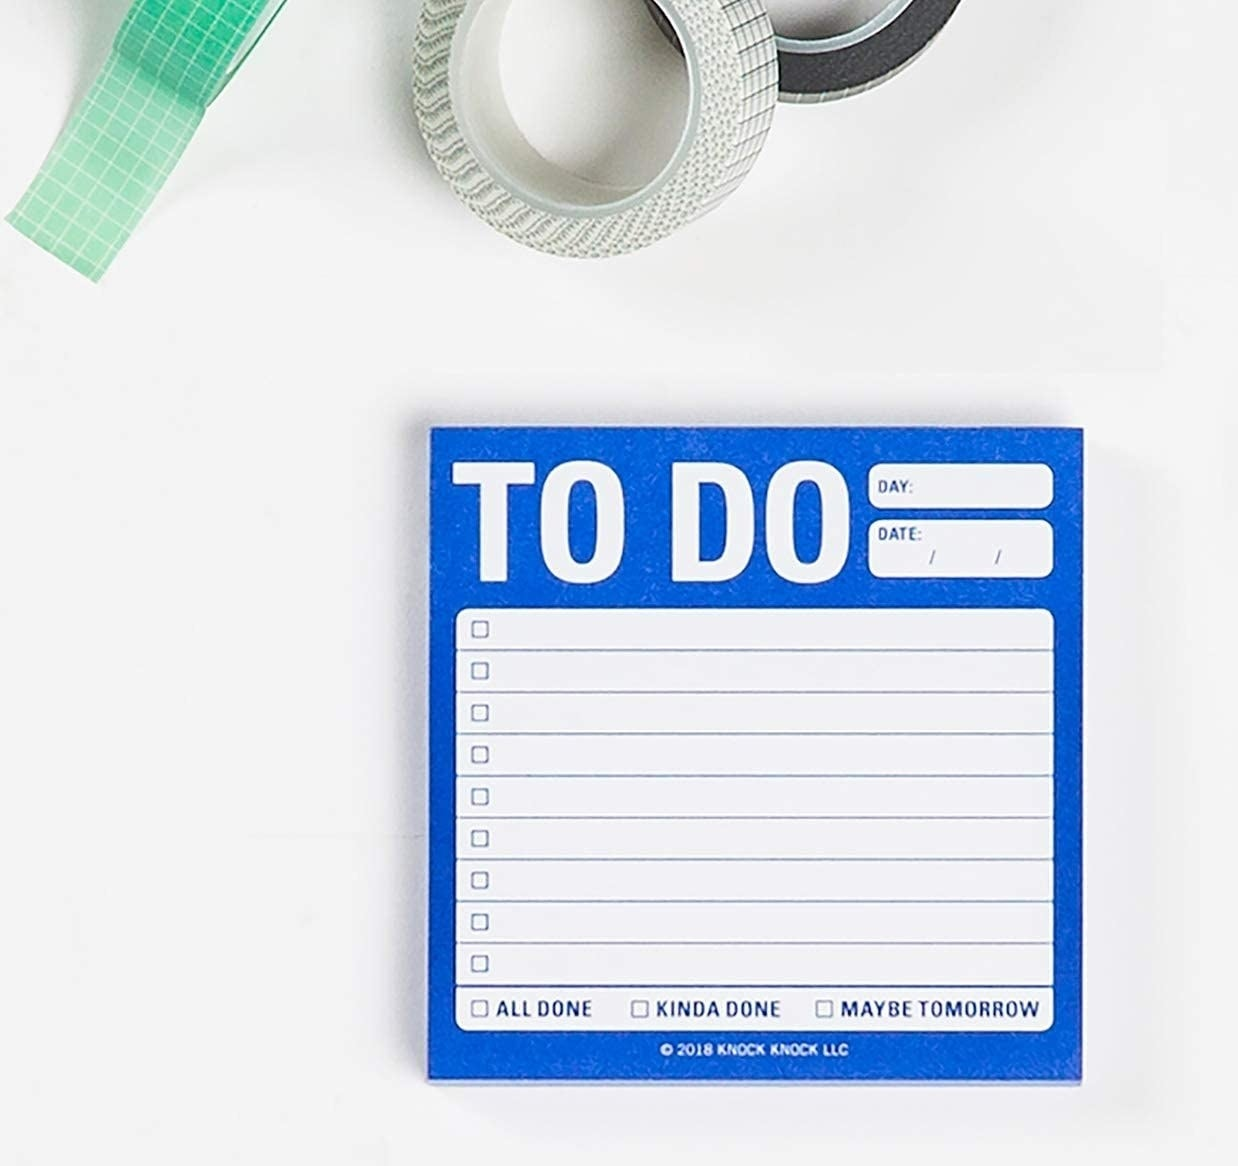 A lined notepad on a plain background